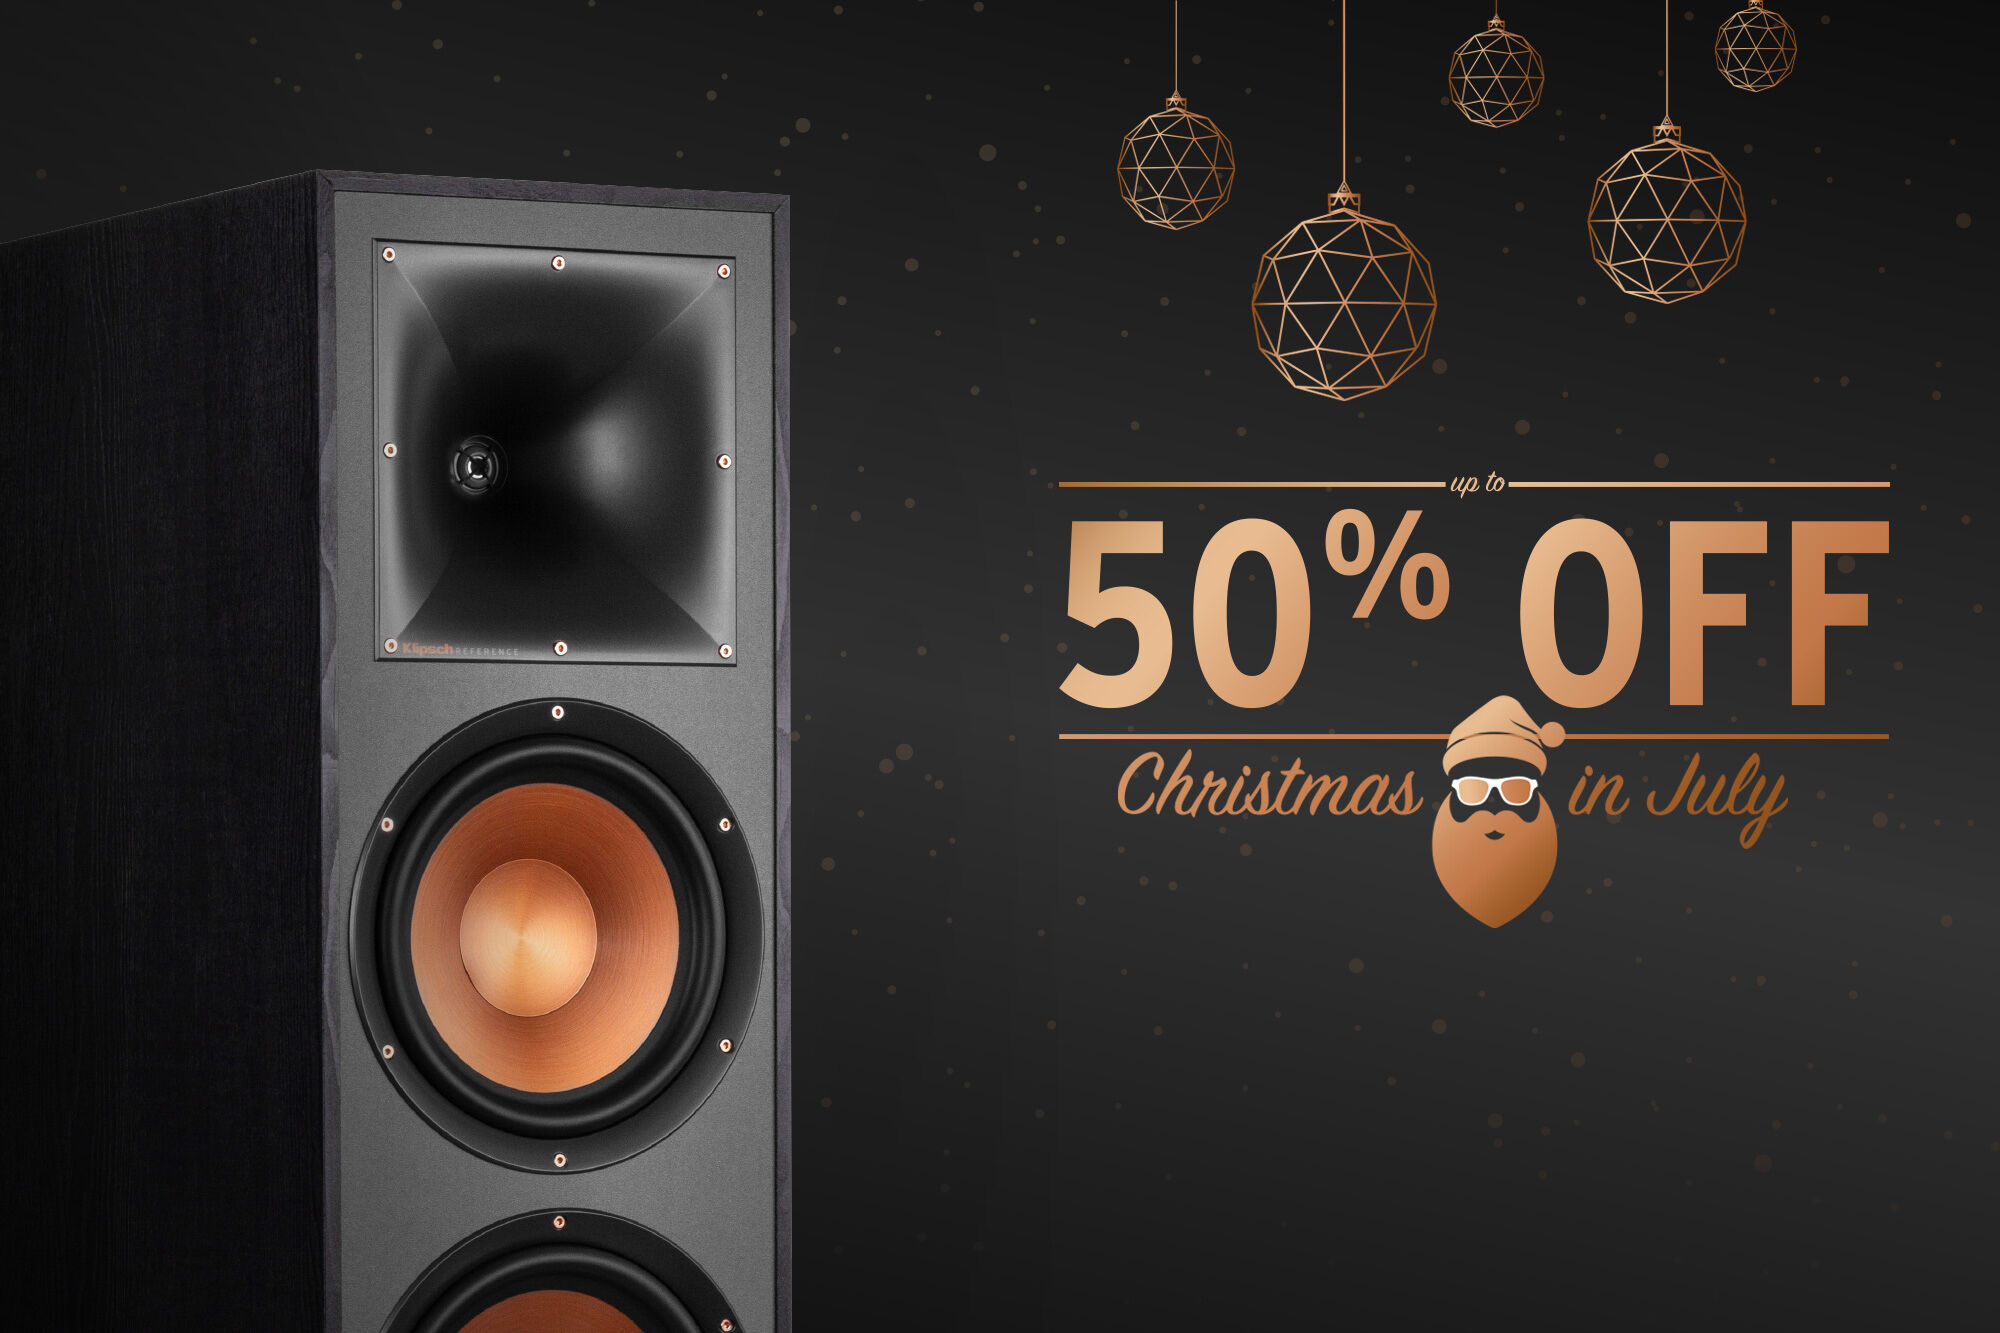 Klipsch Christmas in July 2020 sale